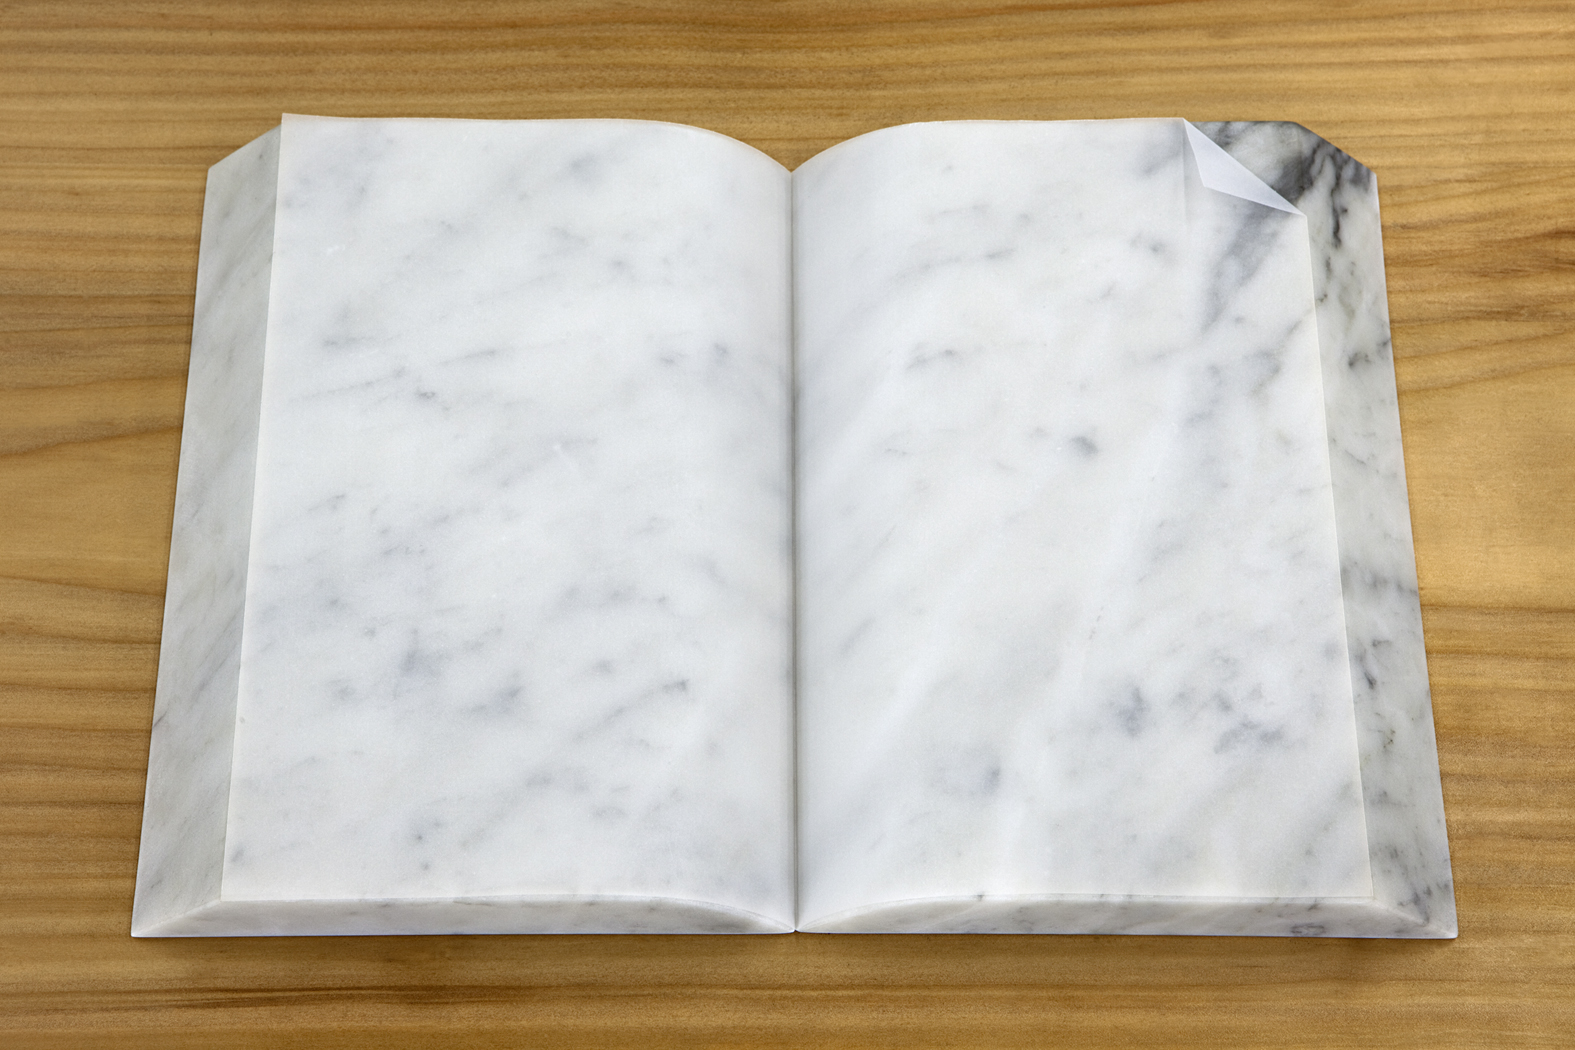 LIVRO/ BOOK (2010) marble and tracing paper, 4 x 25 x 36 cm